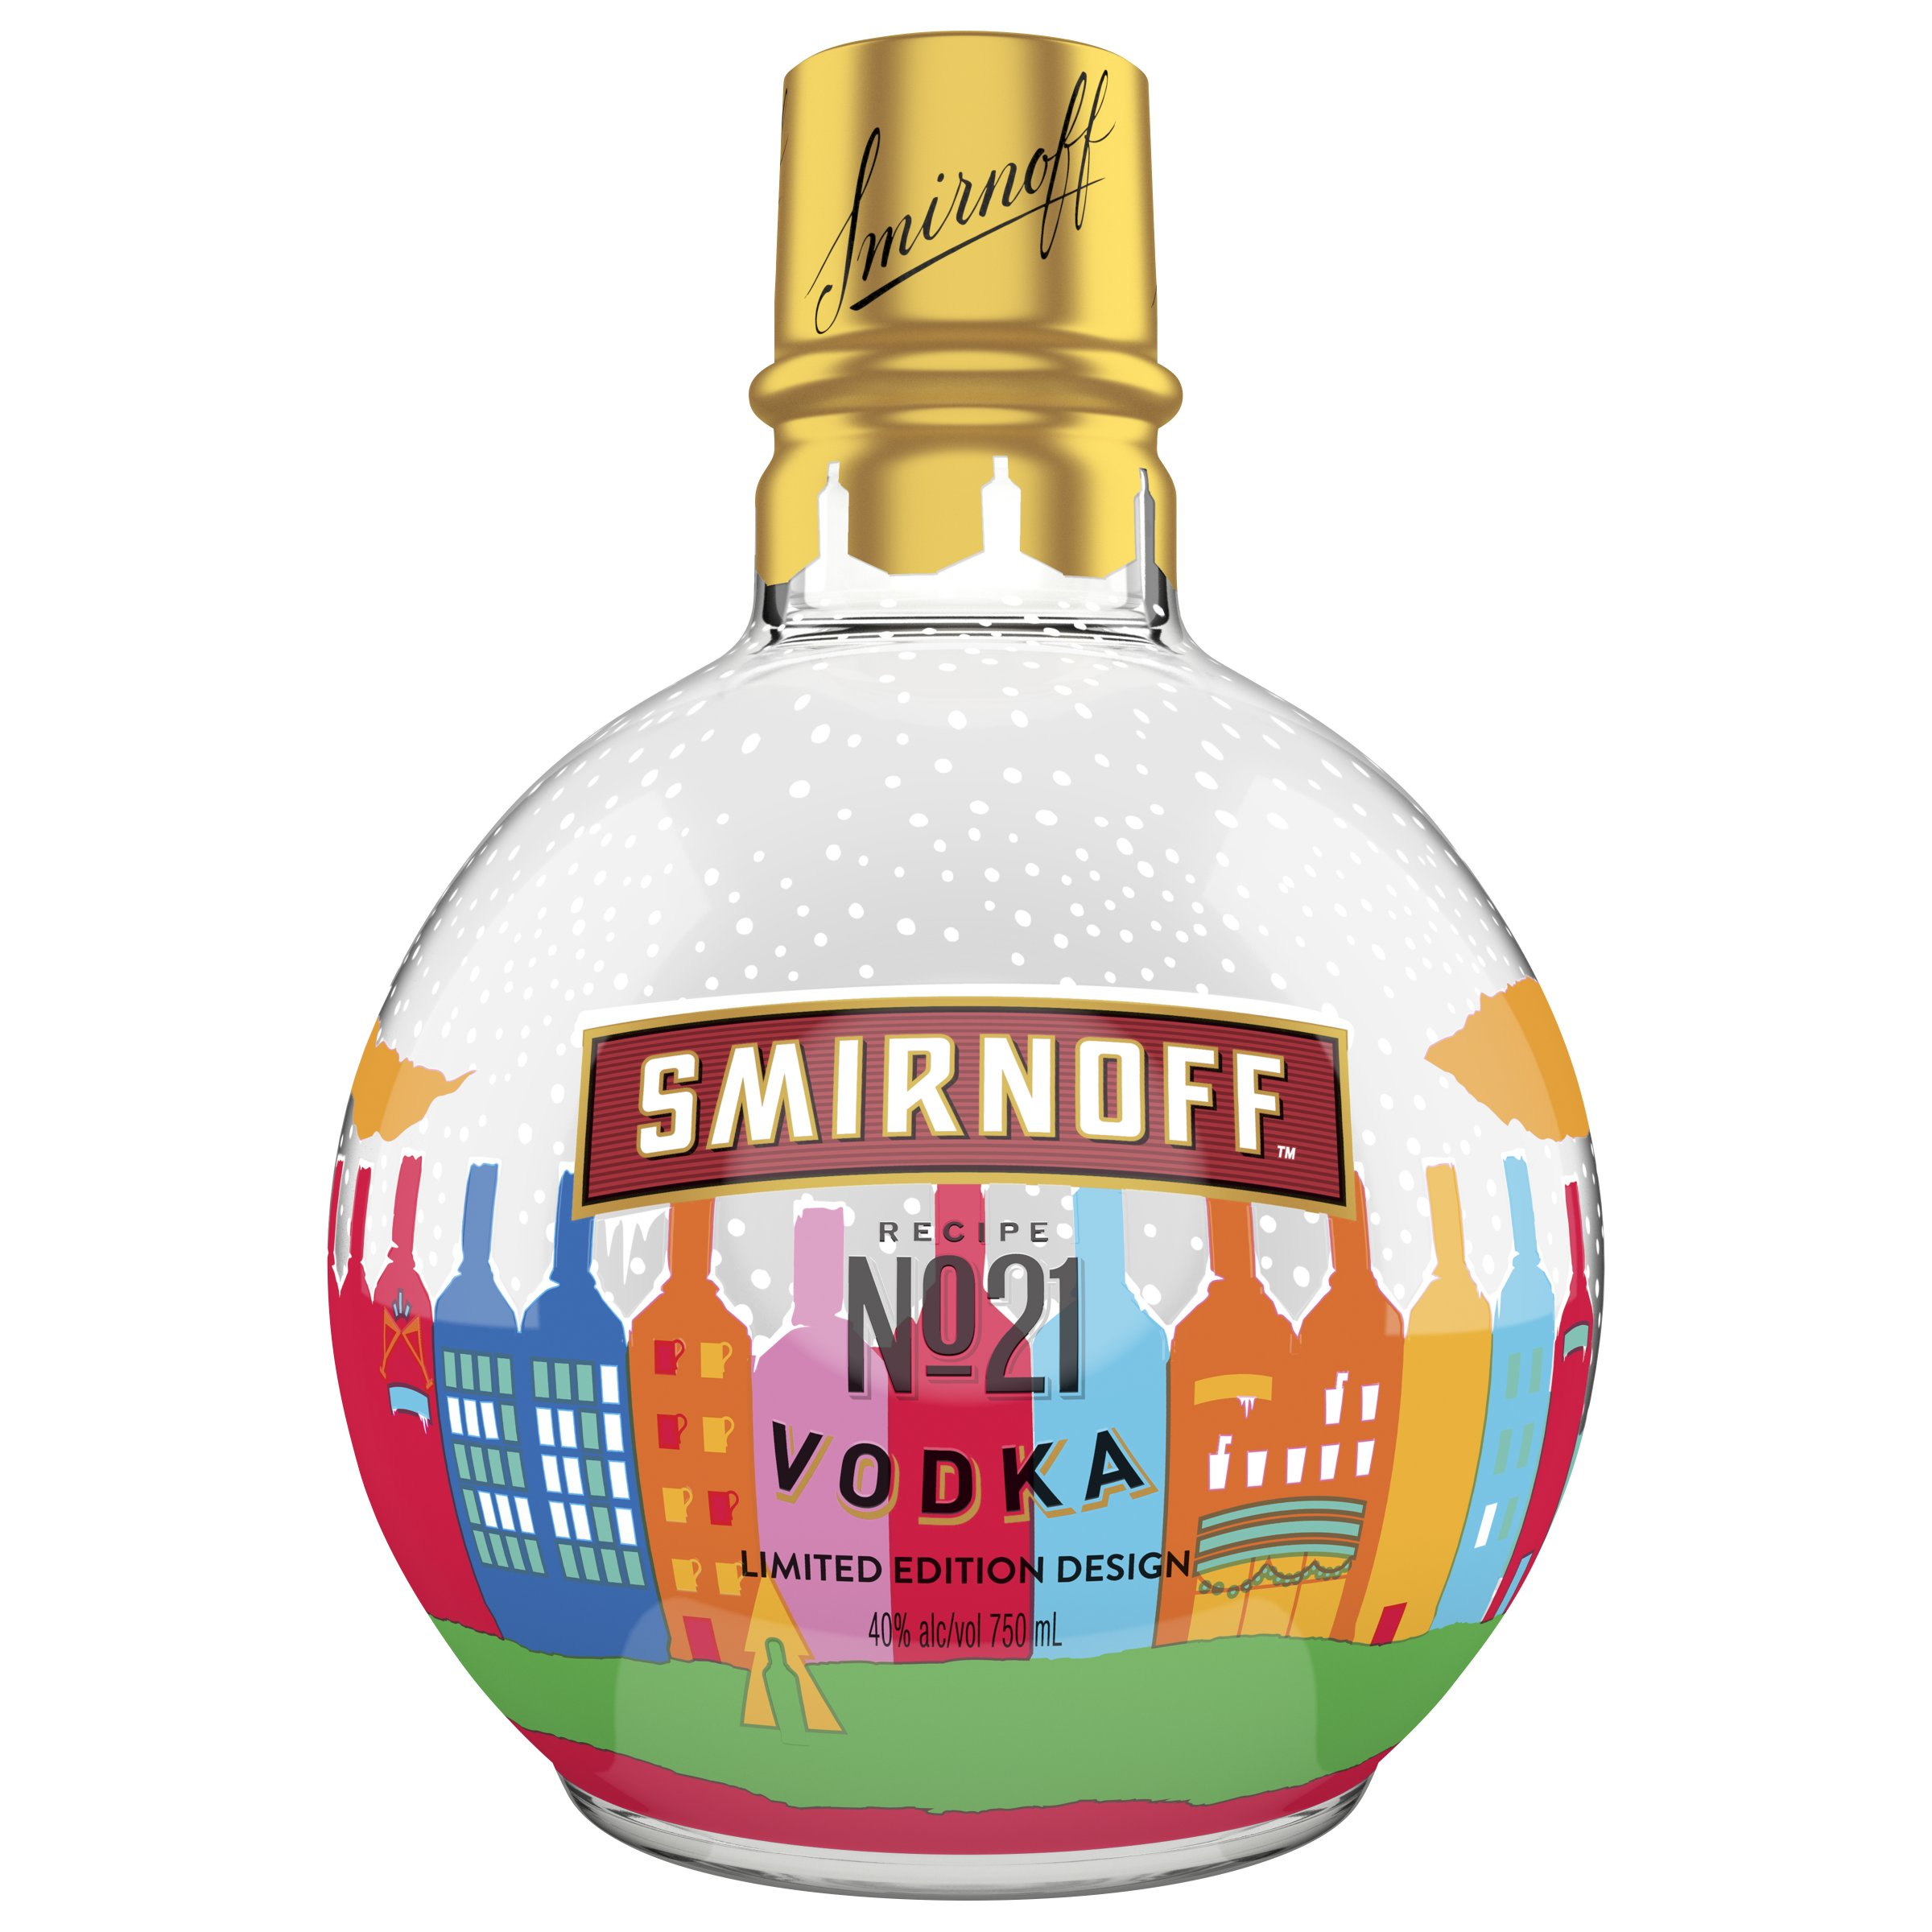 Smirnoff Release Vodka Baubles